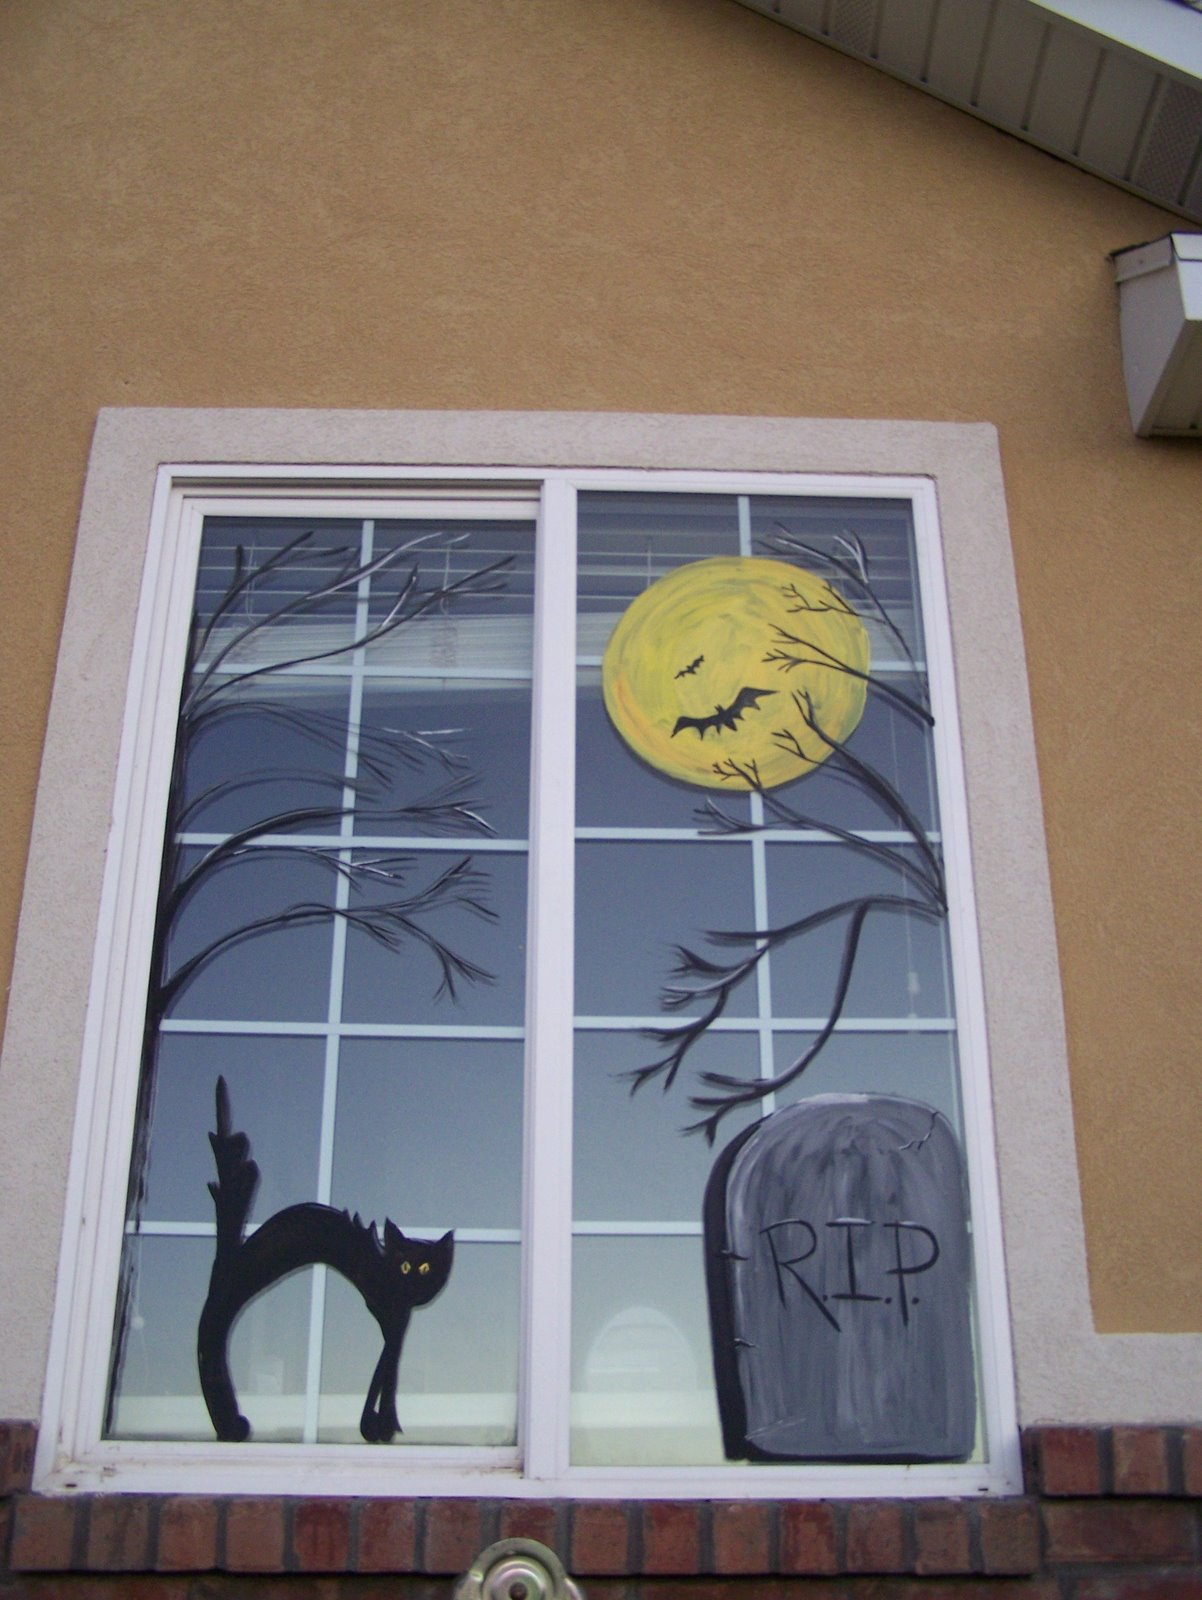 10 Spooky Window Decorations to Get Your Home Ready for ...